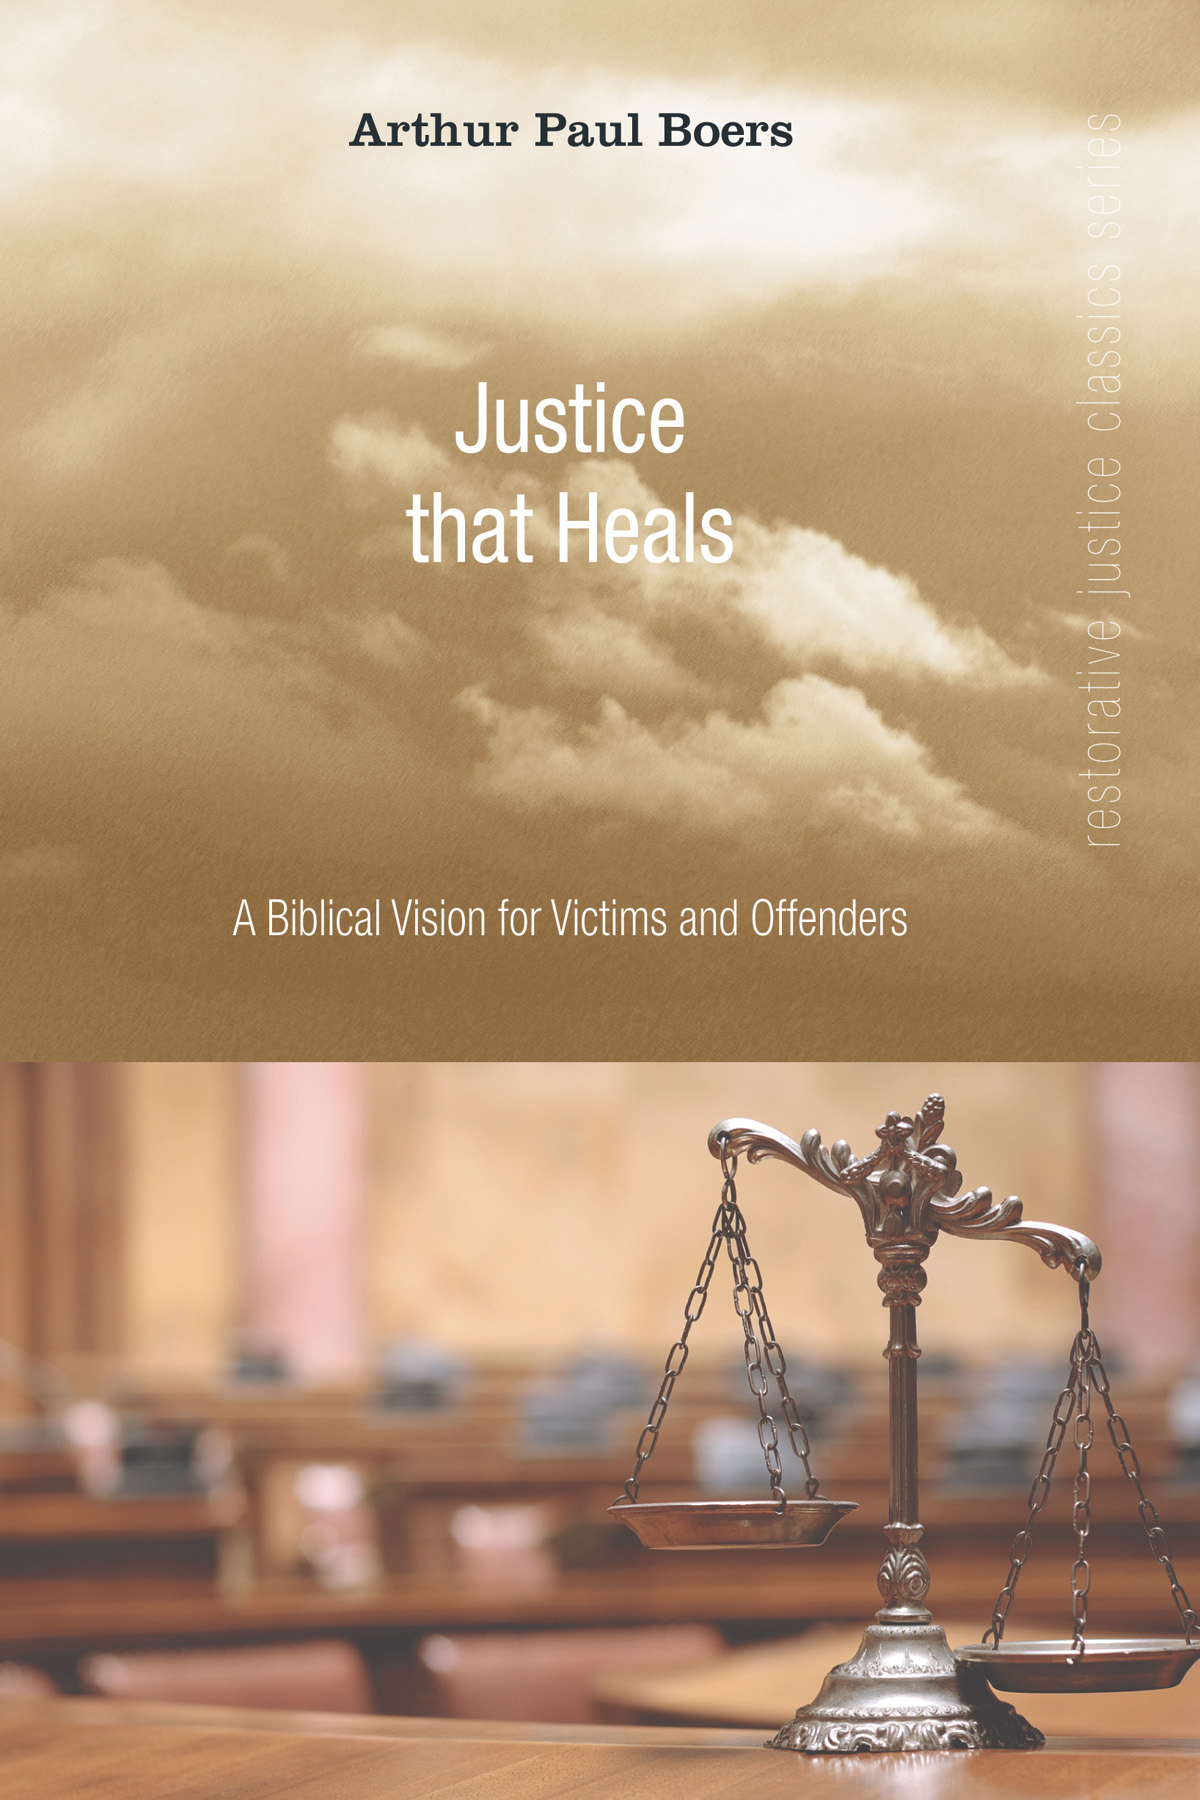 an analysis of the topic of the justice for victims and the offenders responsibility Statistics about - crime and victims, drugs and crime, criminal offenders, the justice system in the united states, law enforcement, prosecution, courts and sentencing, corrections, justice expenditure and employment.